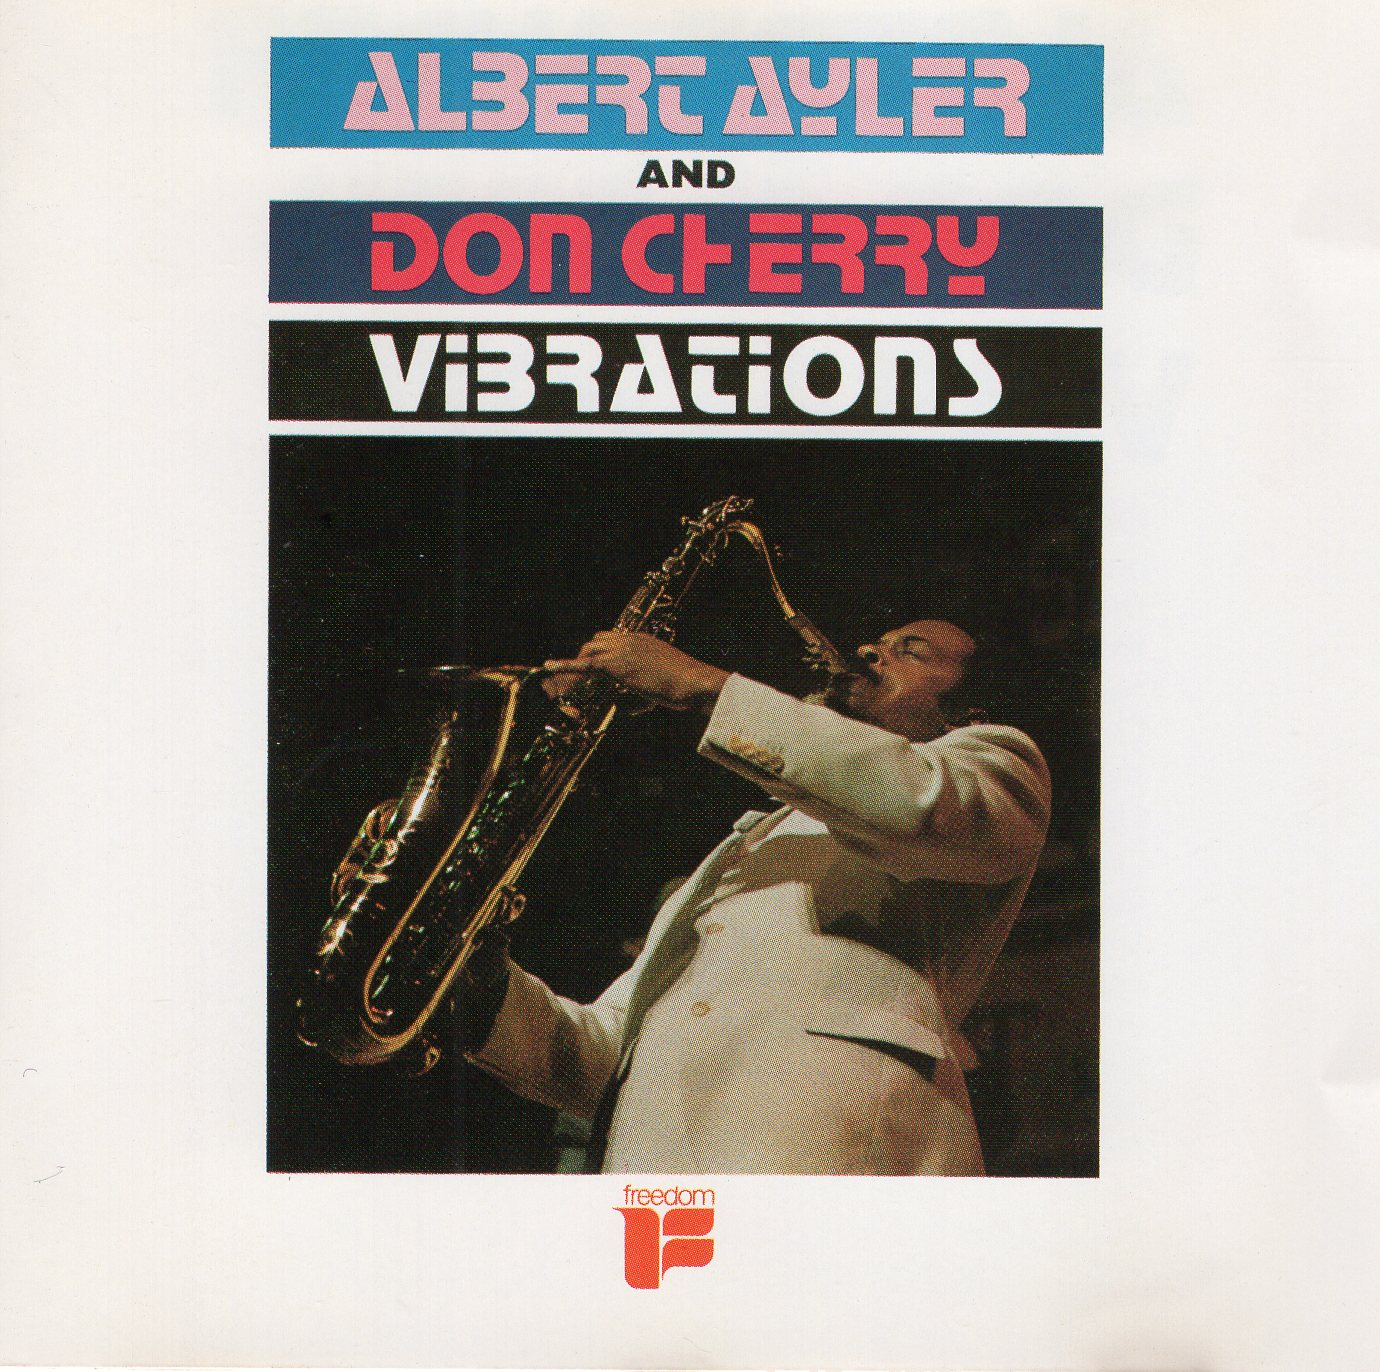 """Albert Ayler And Don Cherry - Vibrations"" Albert Ayler, Don Cherry"